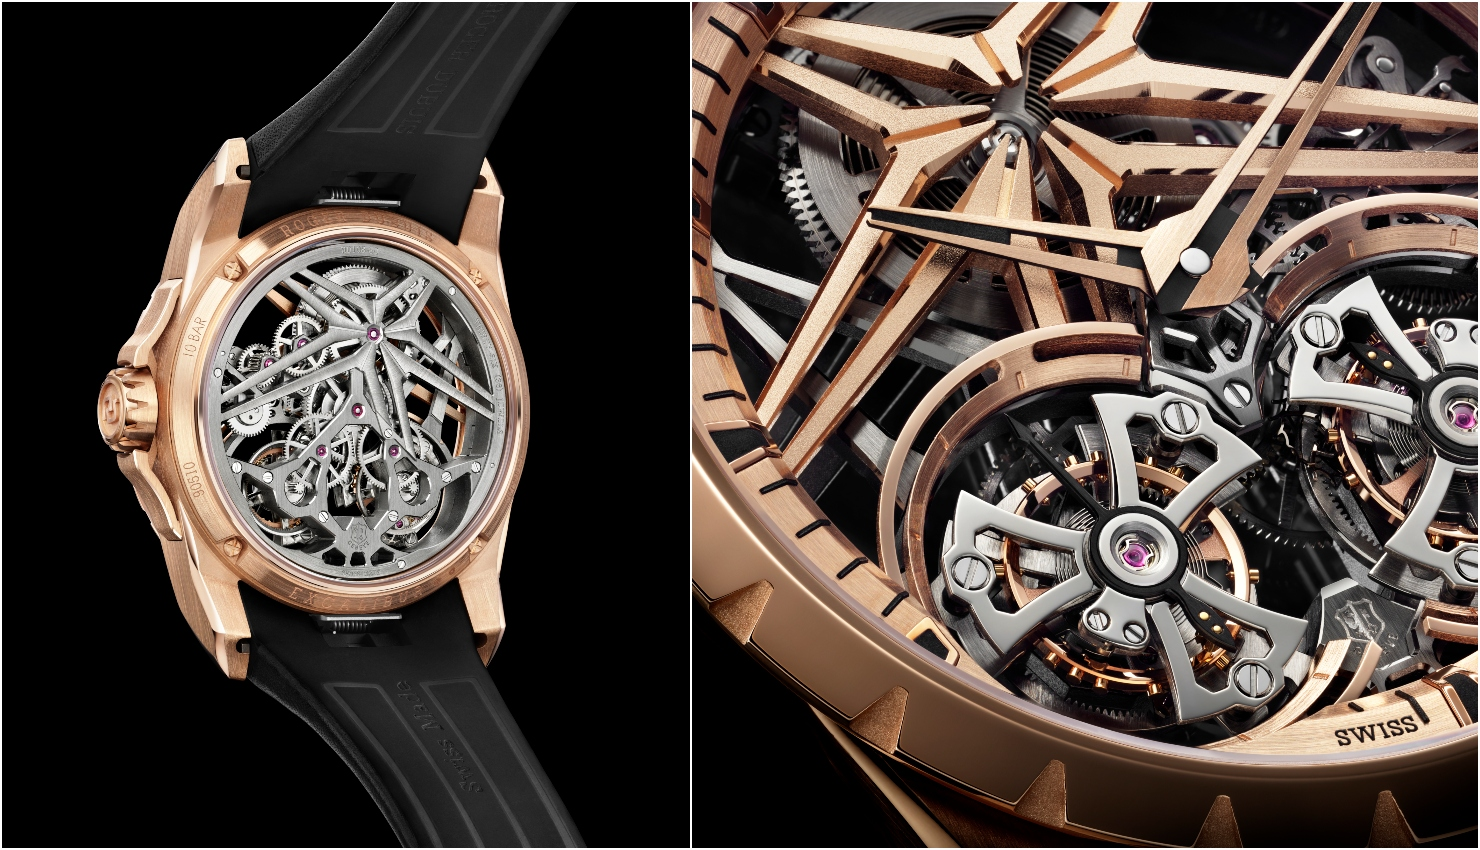 Novedades Relojes Hombres Roger Dubuis Excalibur